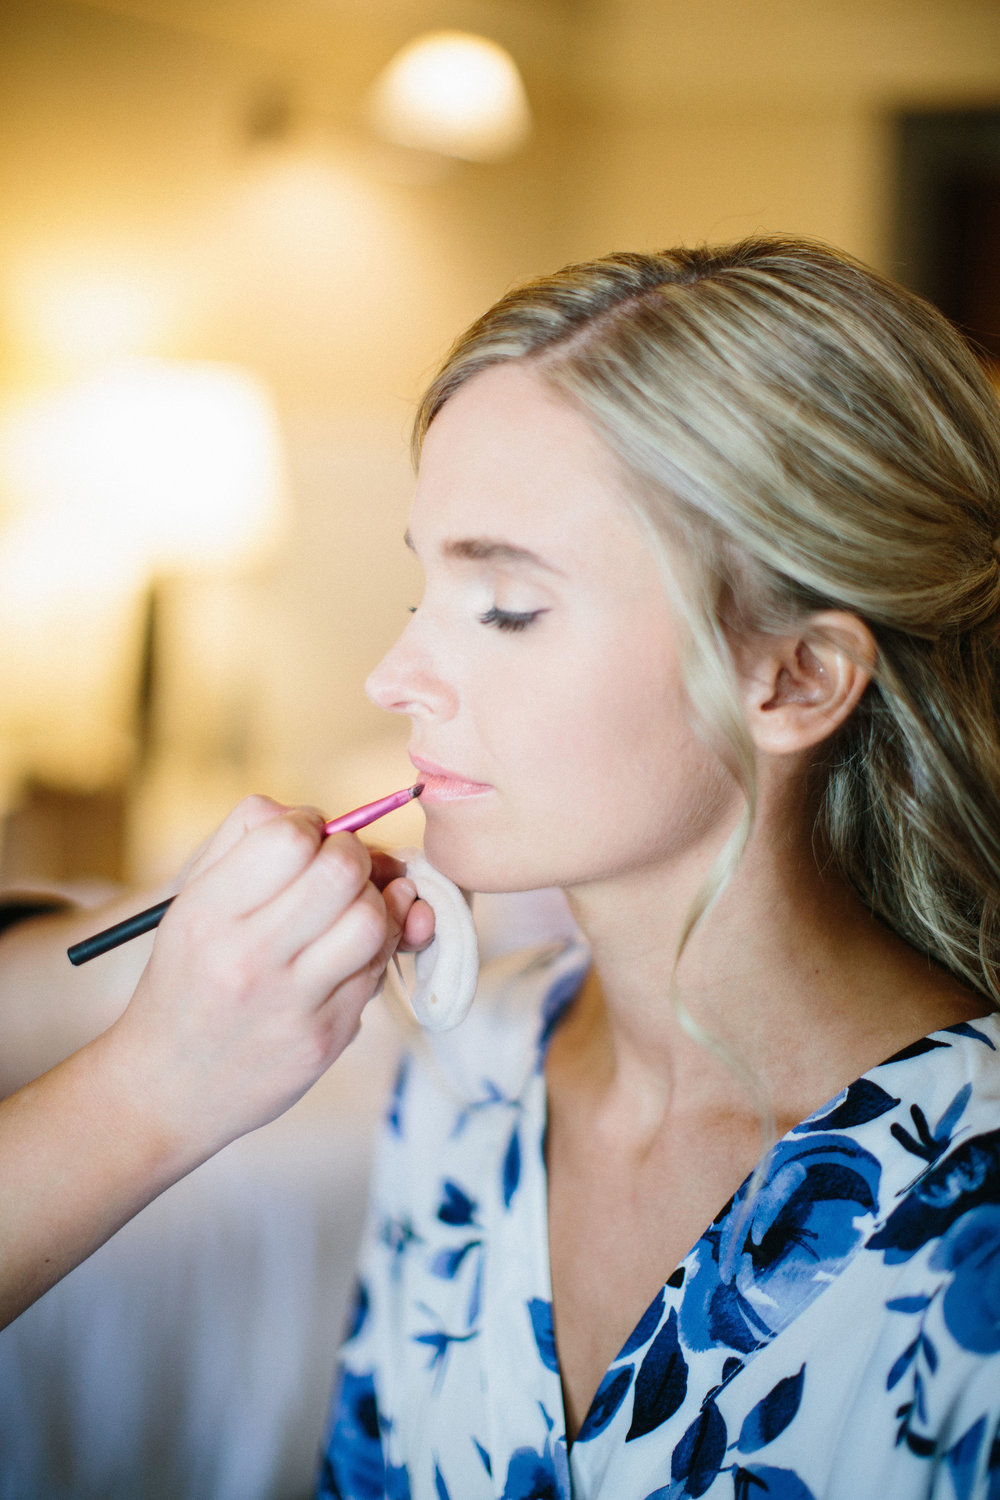 how to prepare for your bridal preview - Skin: As far as skin preparation, if you can please be fresh faced with no makeup on that would be perfect! I'd suggest staying hydrated and having a glass of water as the skin always likes that! If you have a normal skincare routine that you have been following for awhile, I would encourage you to continue doing so. I would avoid any heavy/greasy eye creams, scrubs, or intensive/abrasive skin products. I will also do my signature skin prep to before for the makeup.Space: An open space to accommodate my makeup chair, kit, and room to work in. Usually a dining room/kitchen works best. If you have good natural light/windows we can utilize that, otherwise no need to worry as I always bring my own lighting with me so we will be good to go!